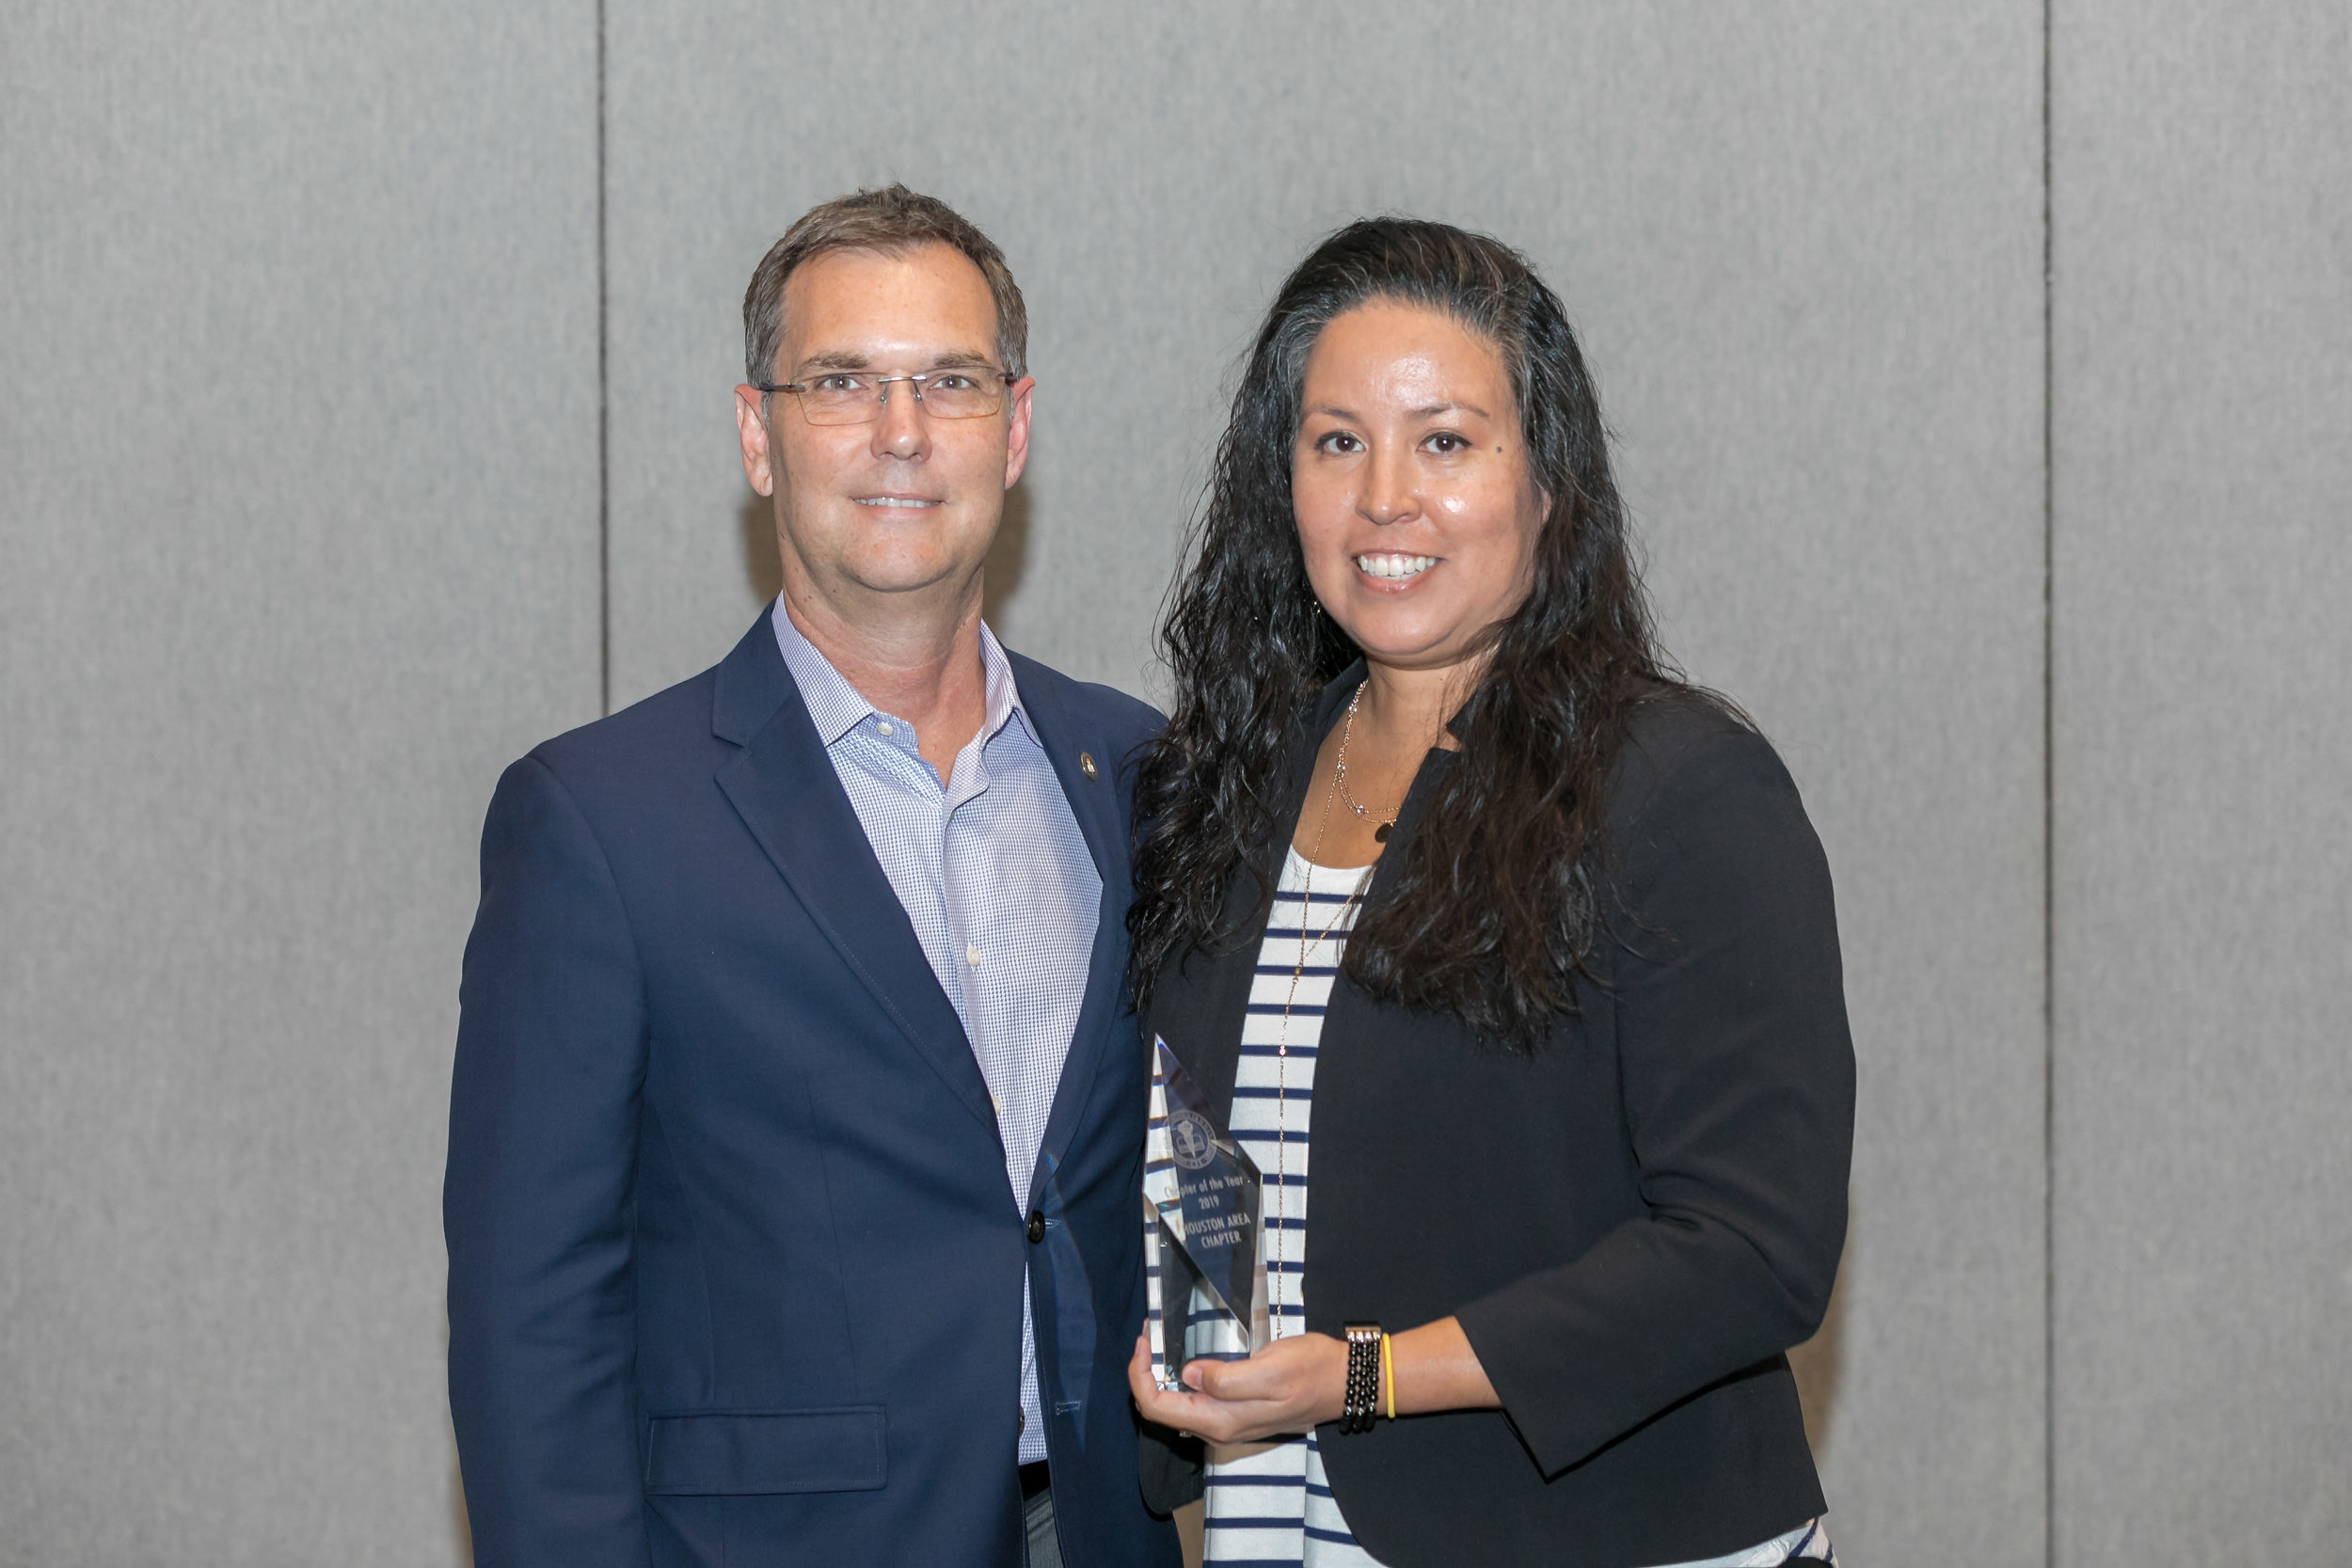 ACFE President Bruce Dorris presenting the Chapter of the Year Award to Houston Area Chapter President Chrysti Ziegler.